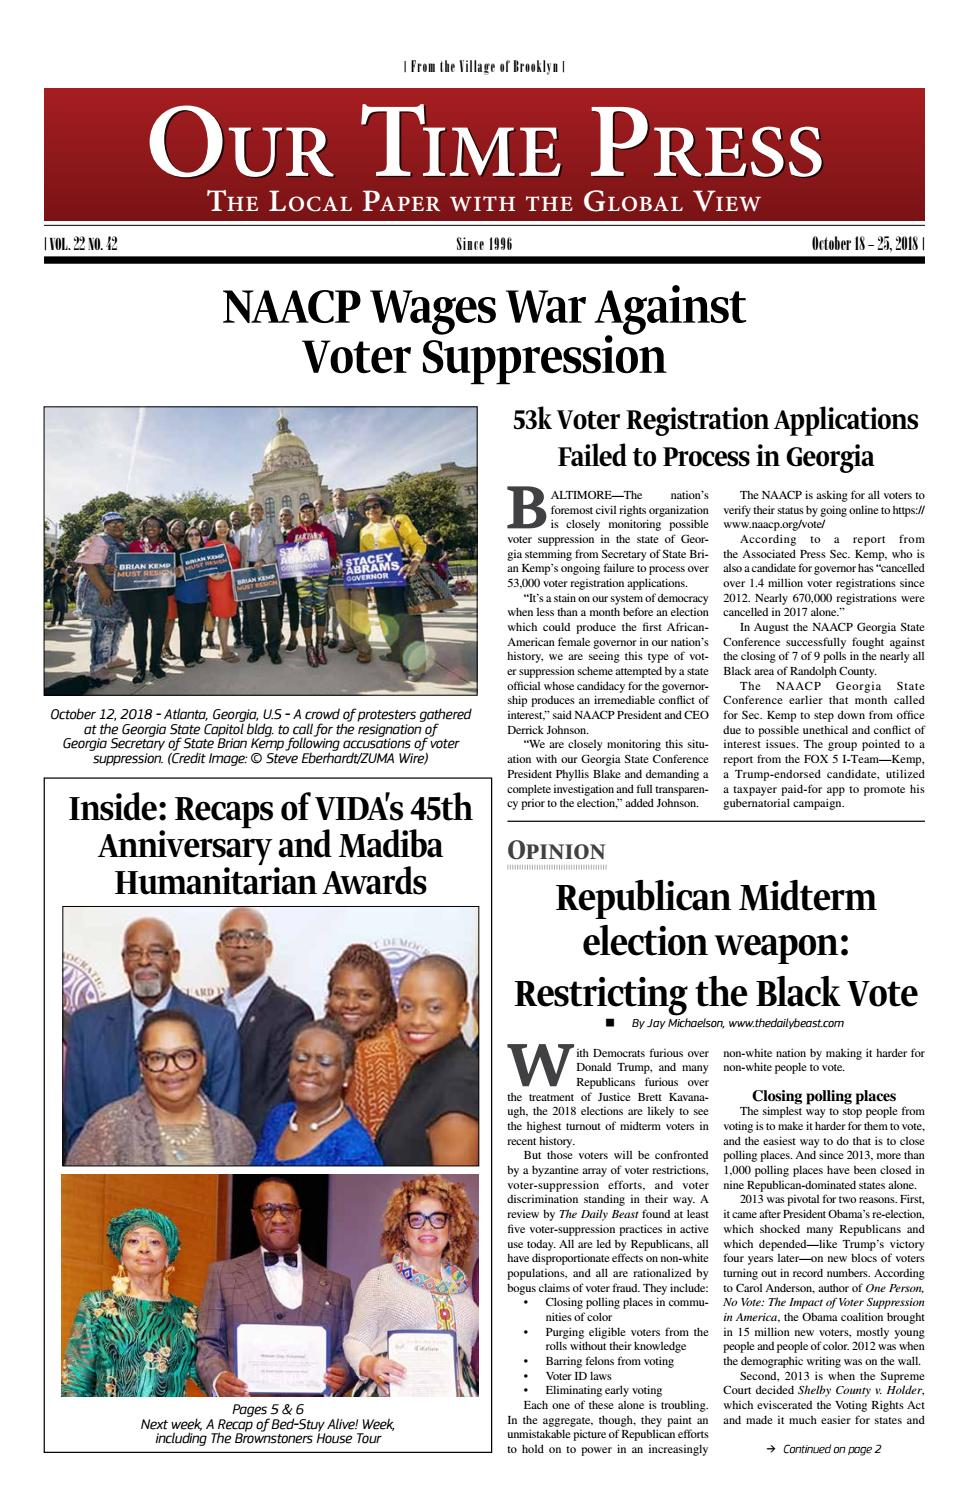 7acf596af61 Our Time Press - Week of October 18, 2018 by Our Time Press - issuu